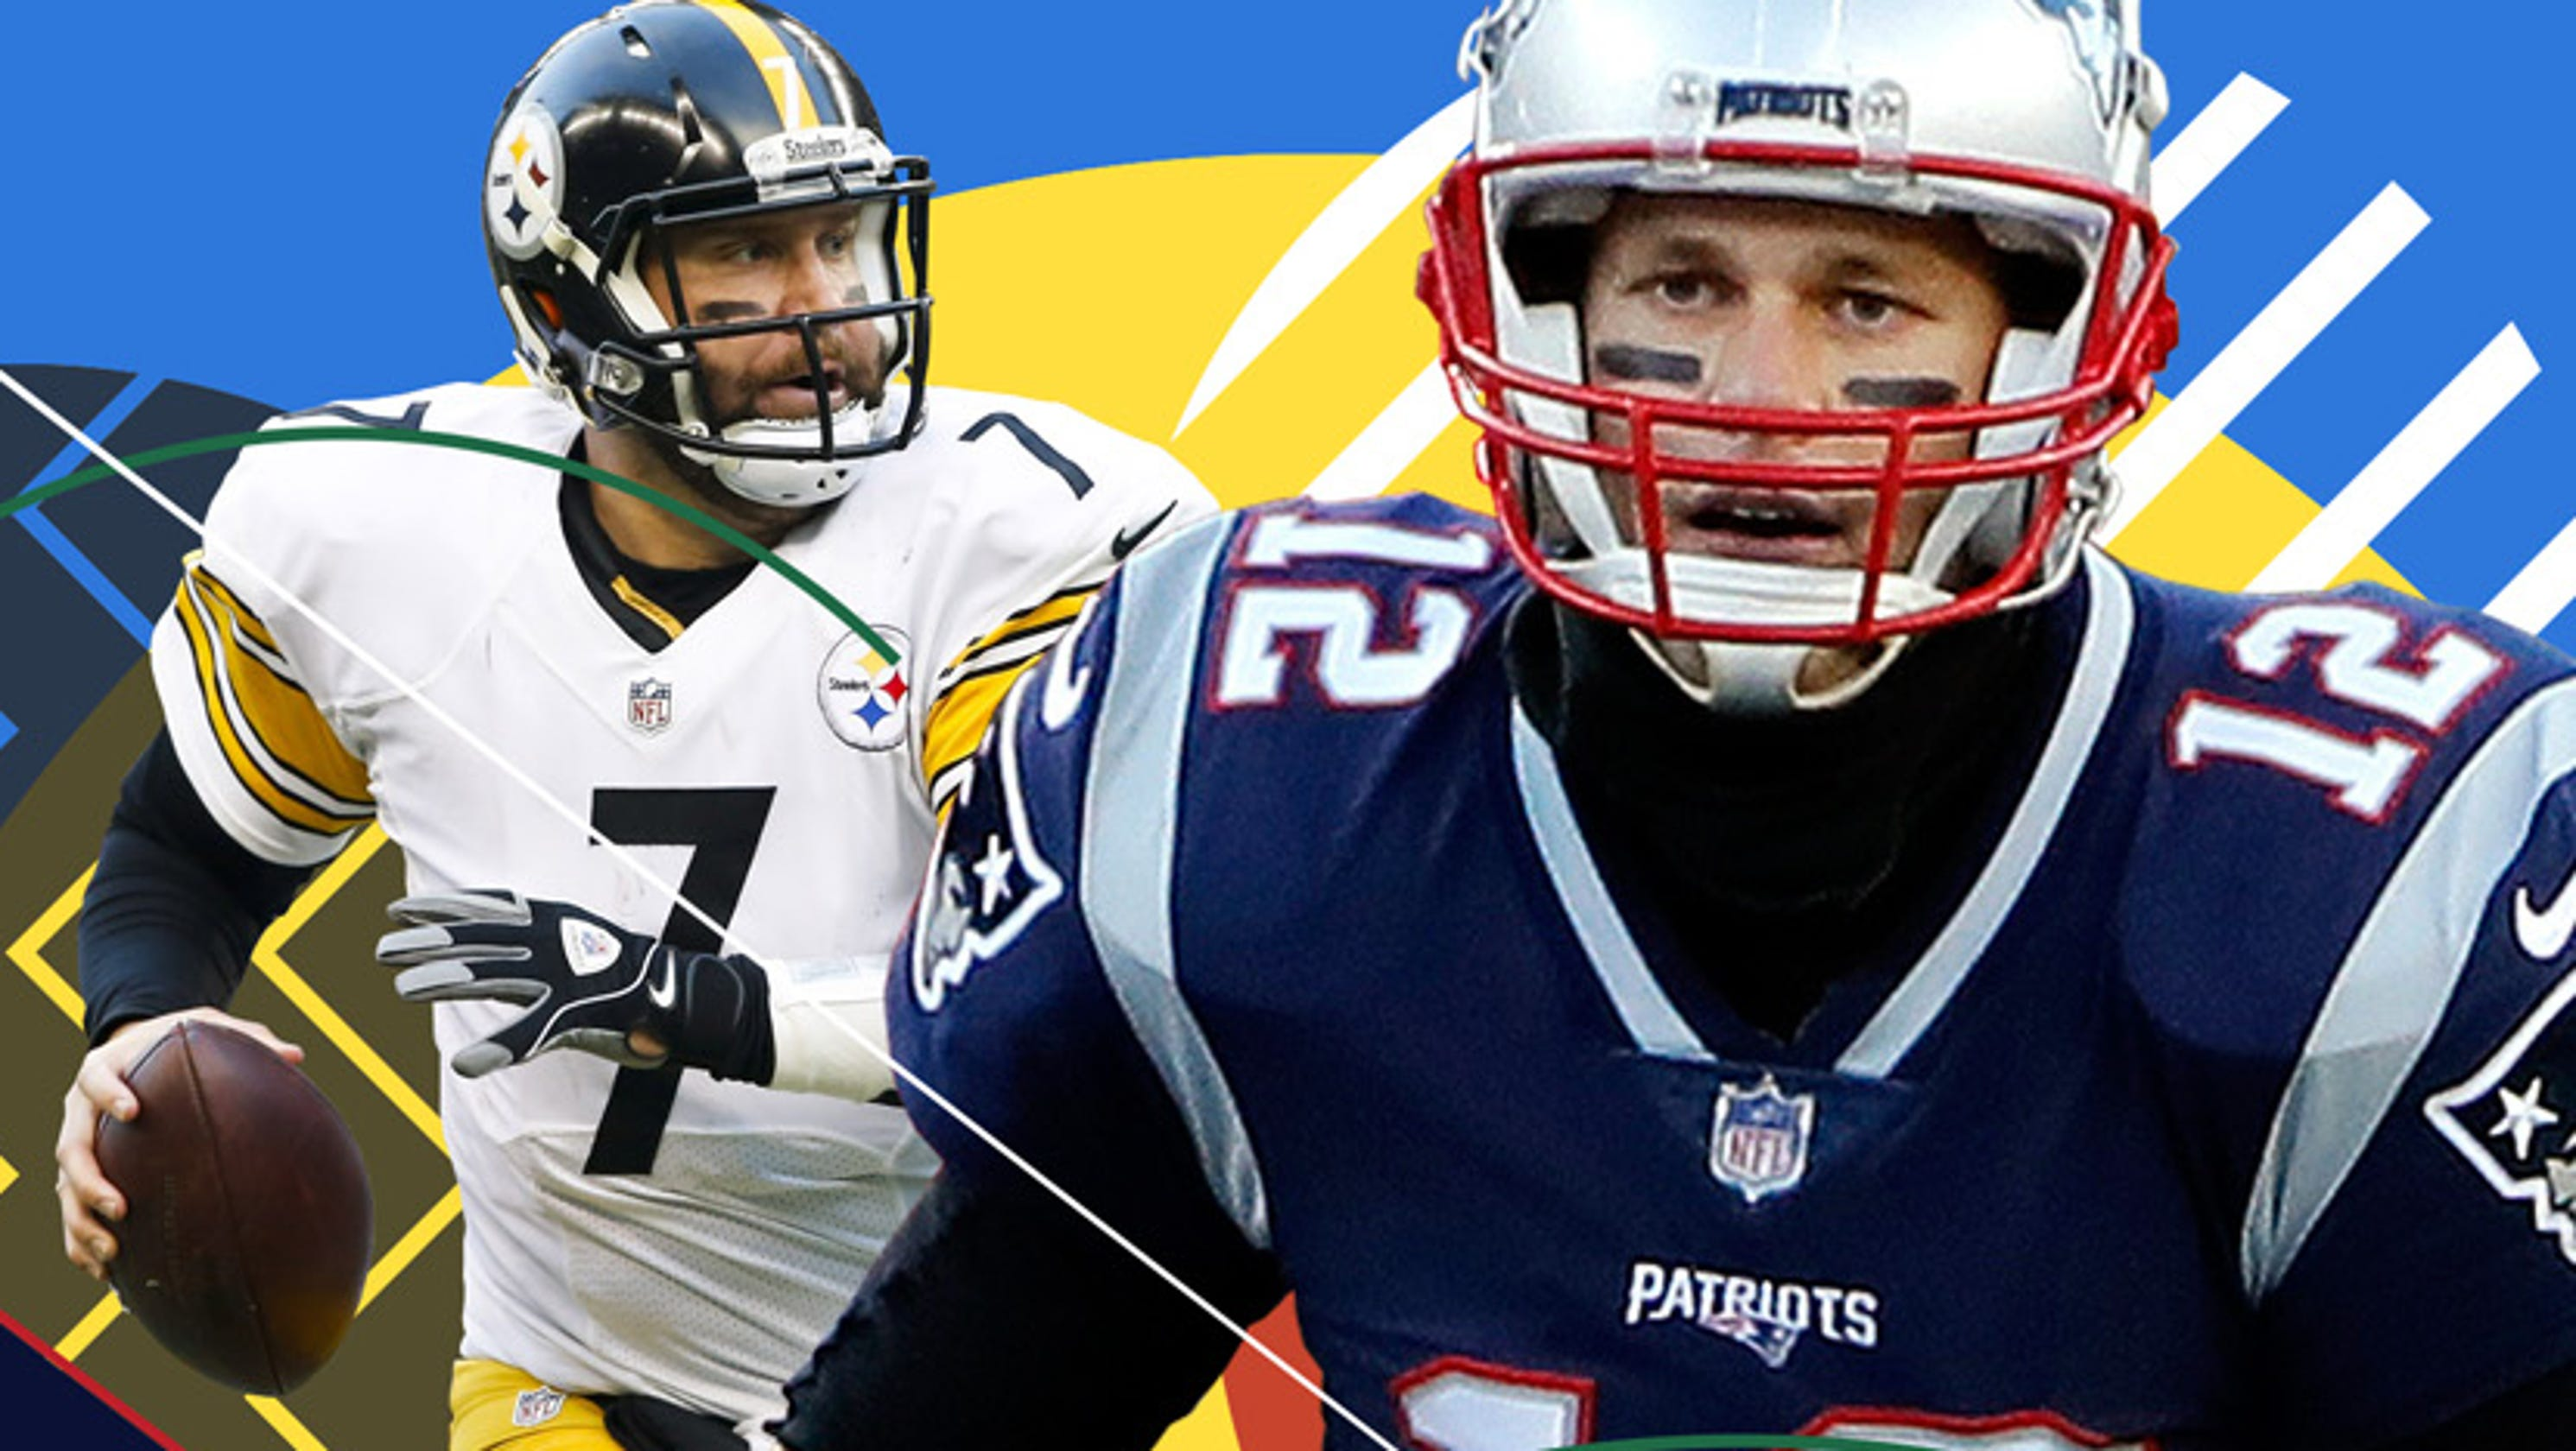 USA TODAY Week 1 NFL picks: Do Steelers upset Patriots in